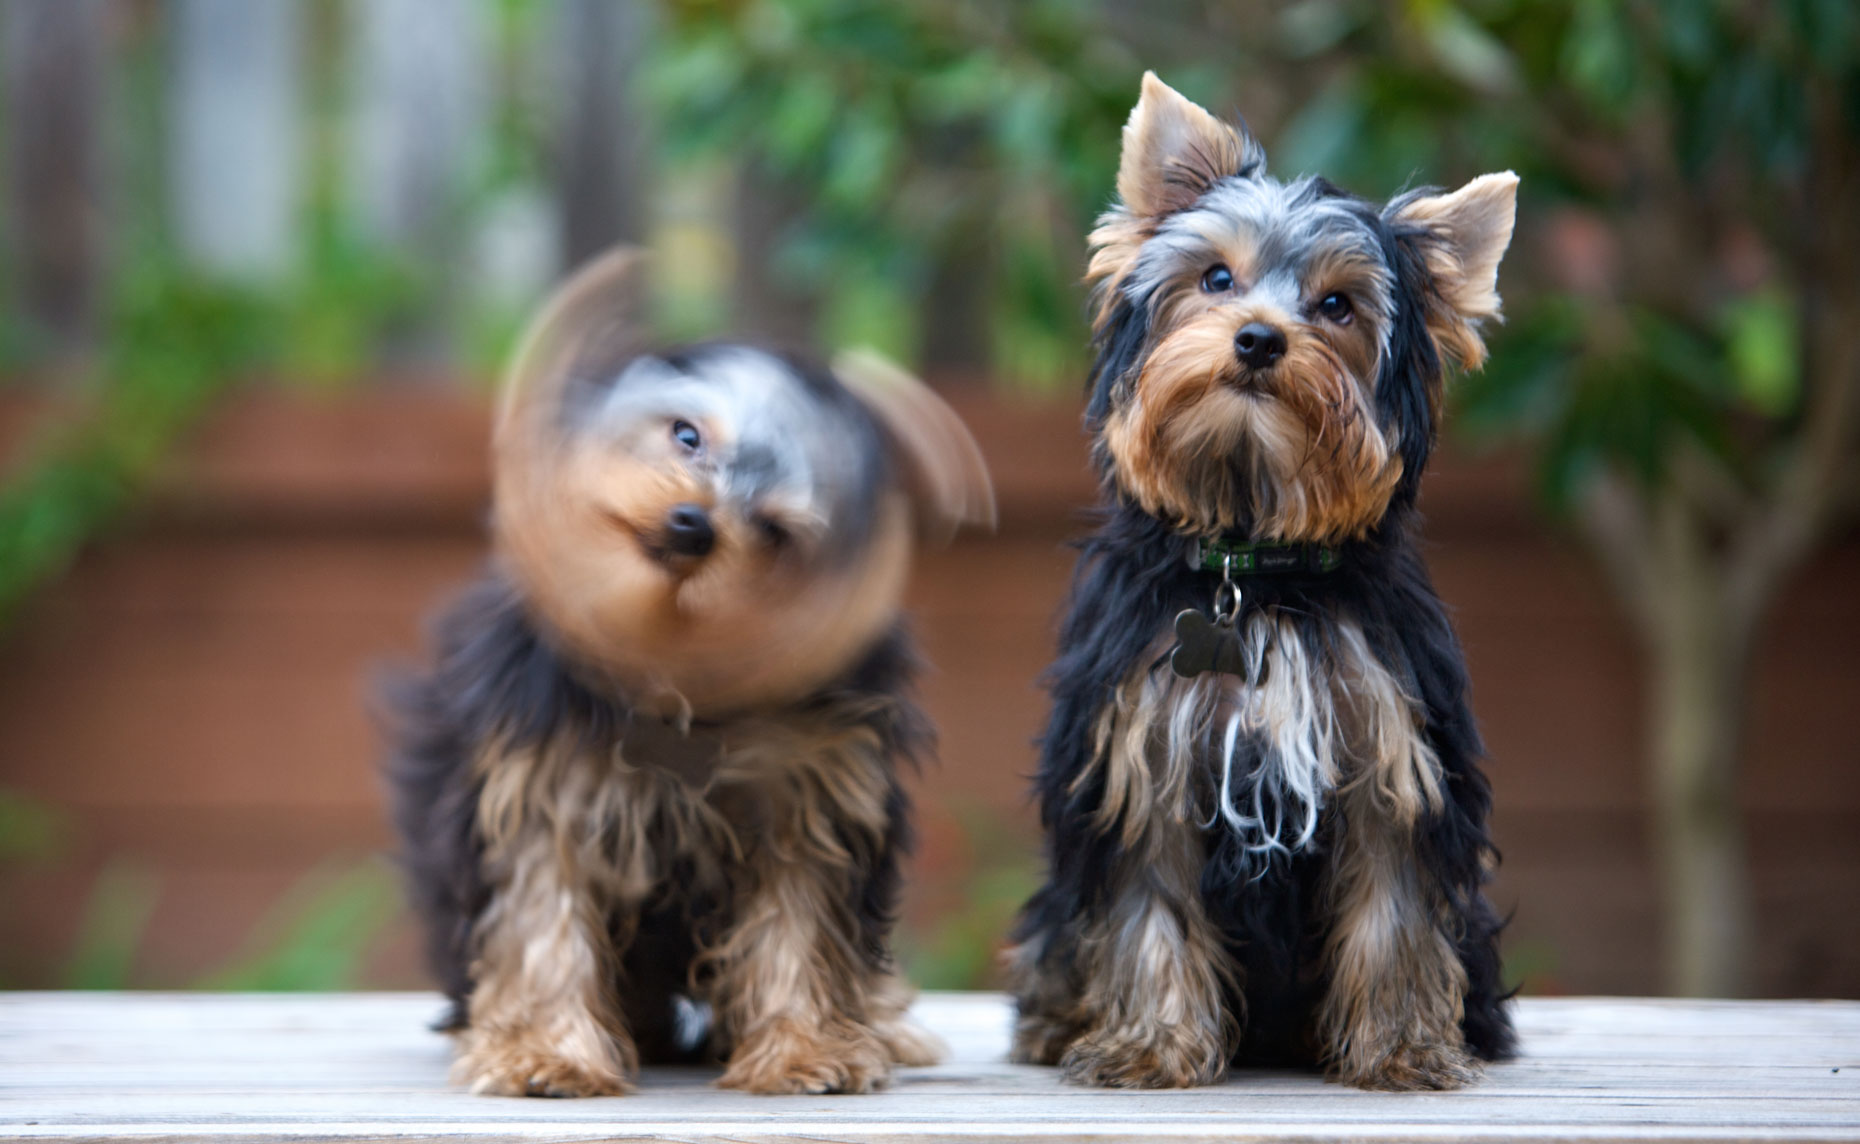 Dog and Pet Photography  |  Two Yorkie Dogs by Mark Rogers